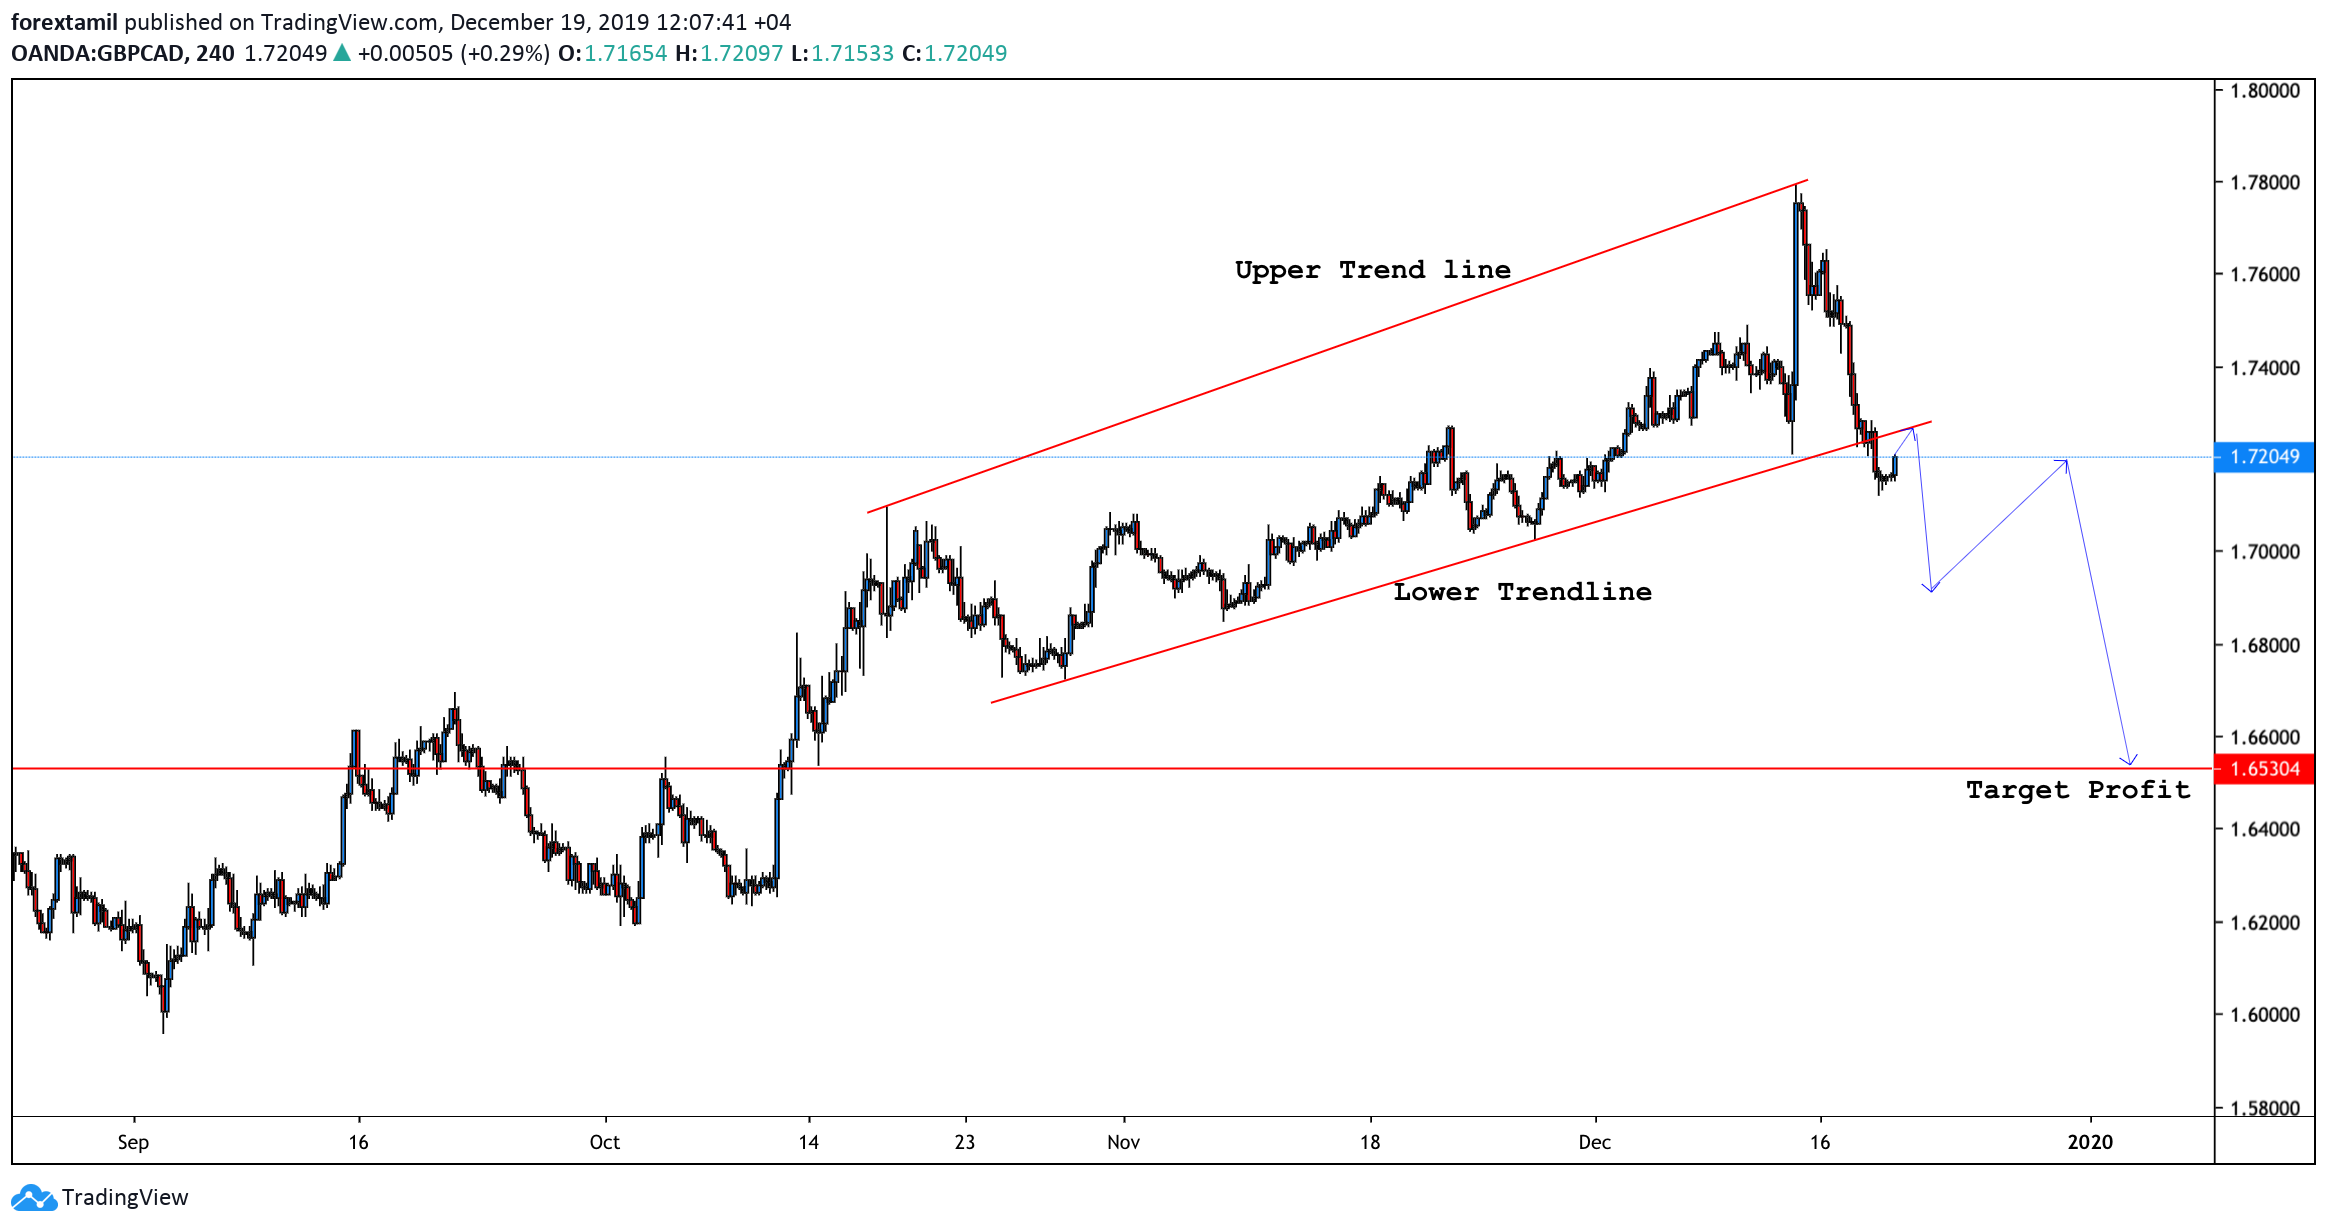 GBP/CAD exchange rate might edge lower within next week trading sessions…….